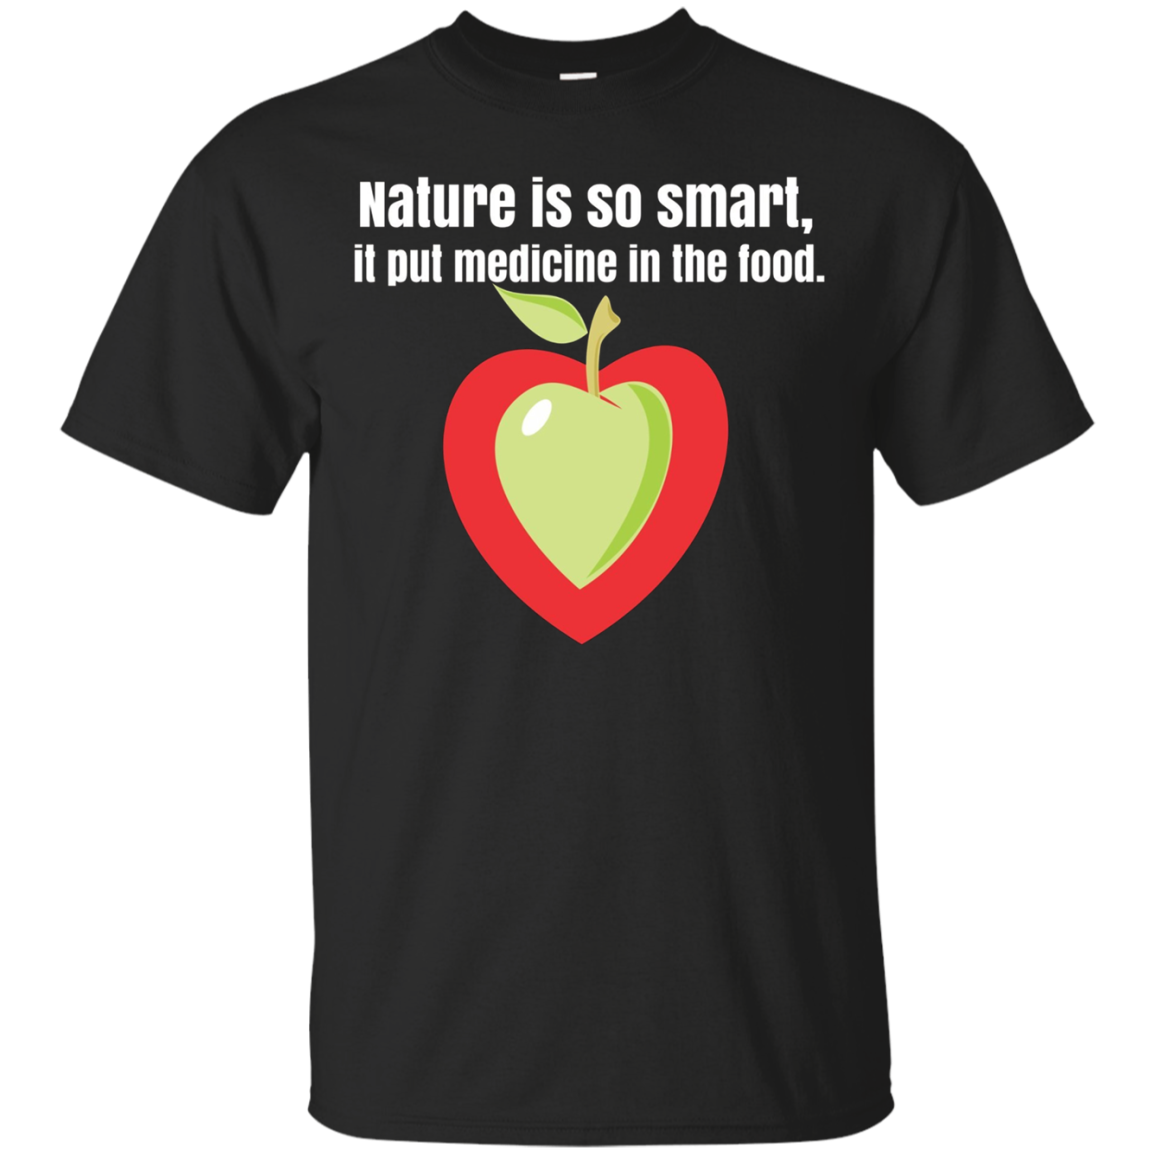 Nature is so smart, it put medicine in the food T-shirt